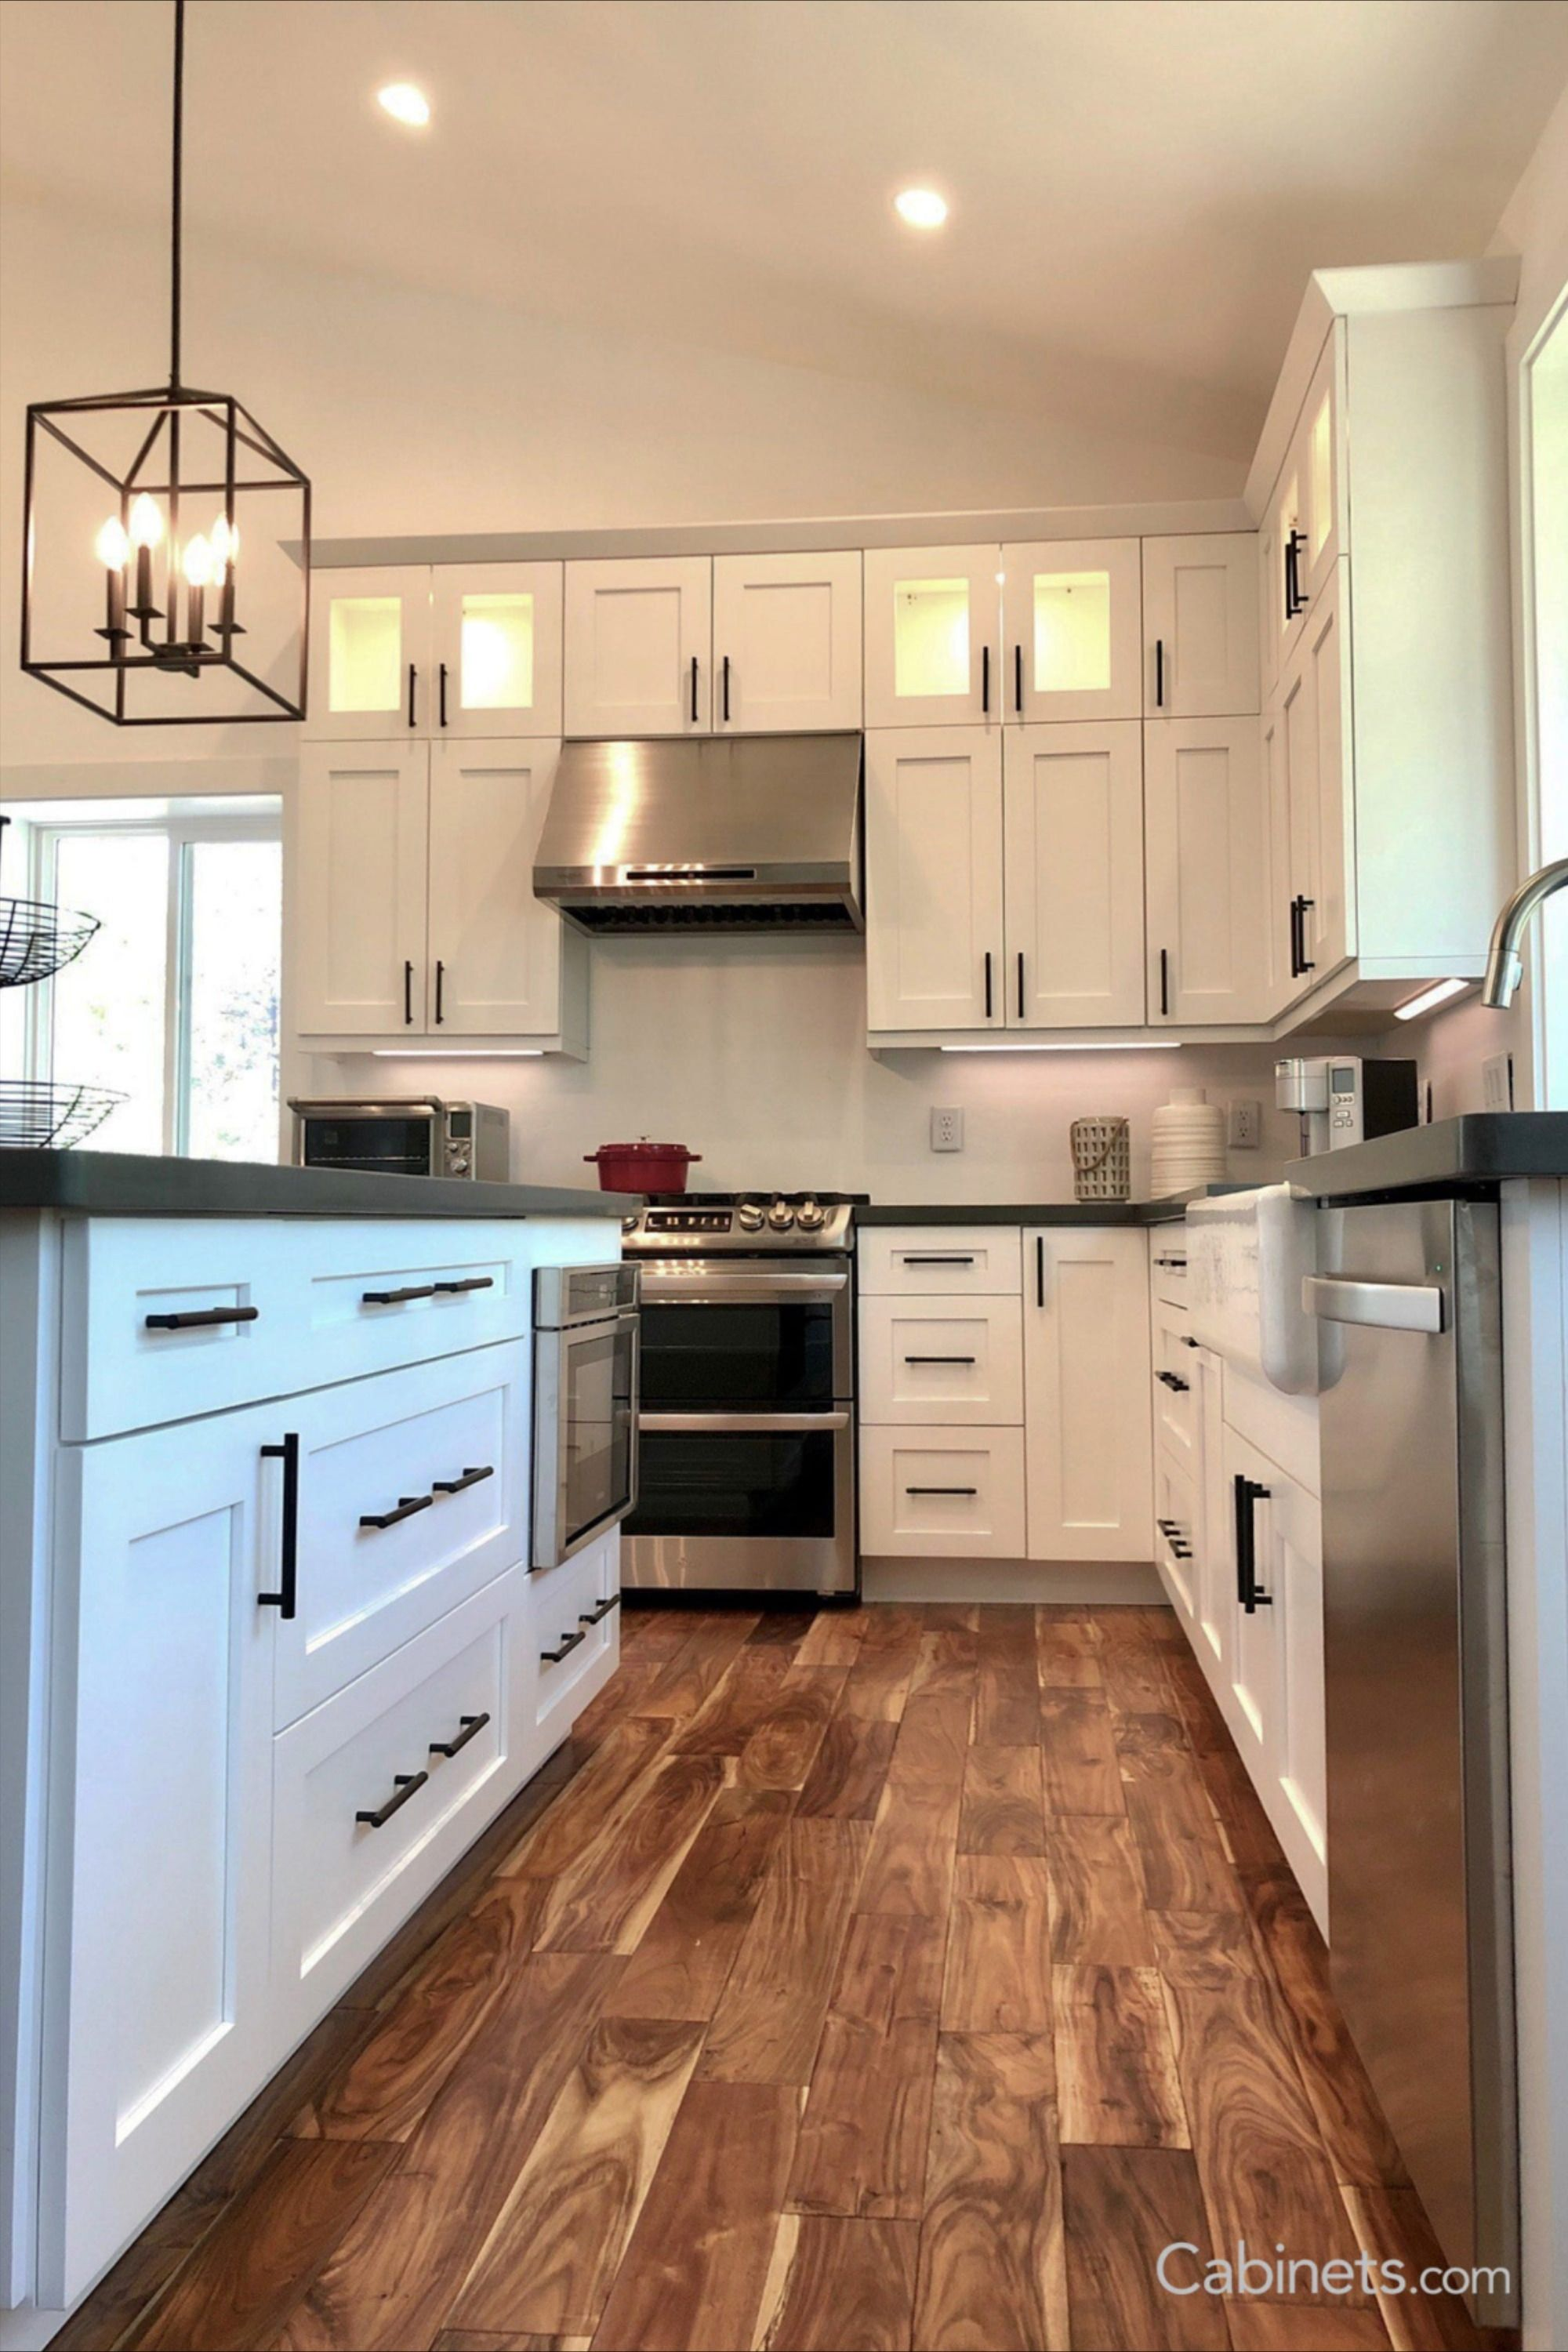 Download Wallpaper What Are White Shaker Kitchen Cabinets